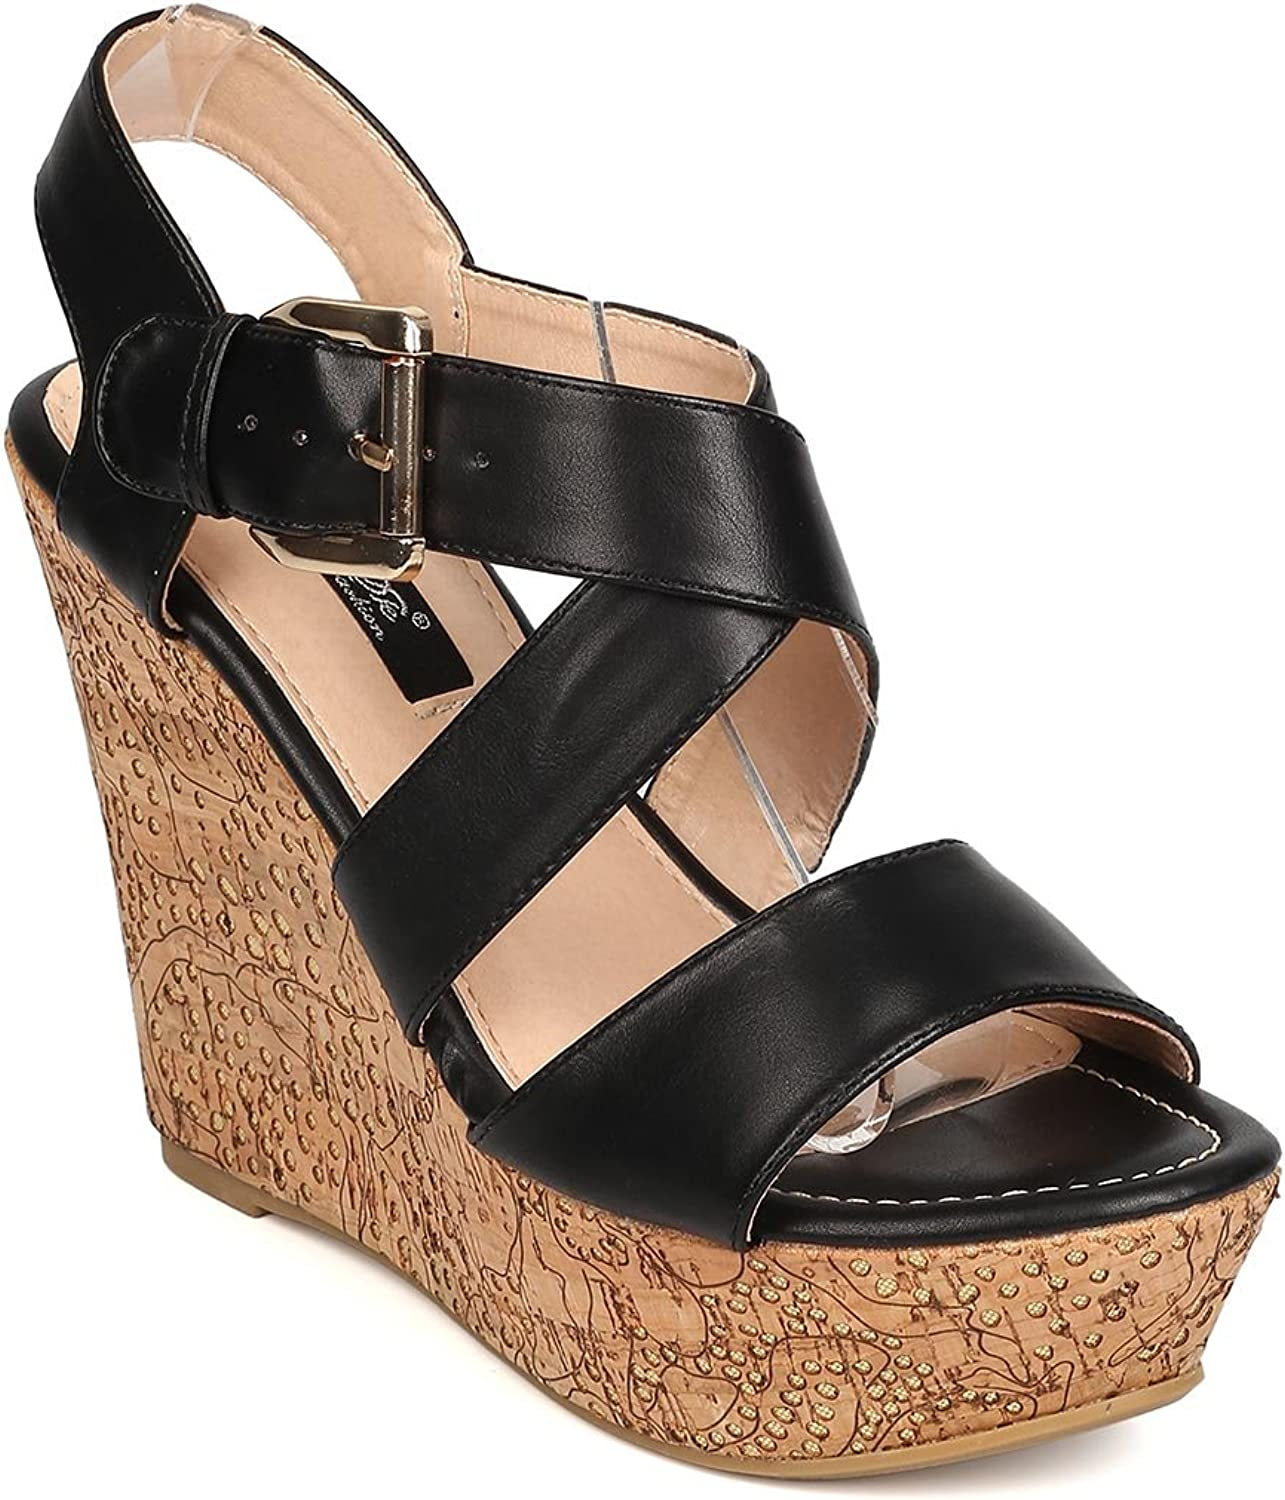 DBDK Women Leatherette Open Toe Cross Strap Cork Platform Wedge Sandal FA93 - Black